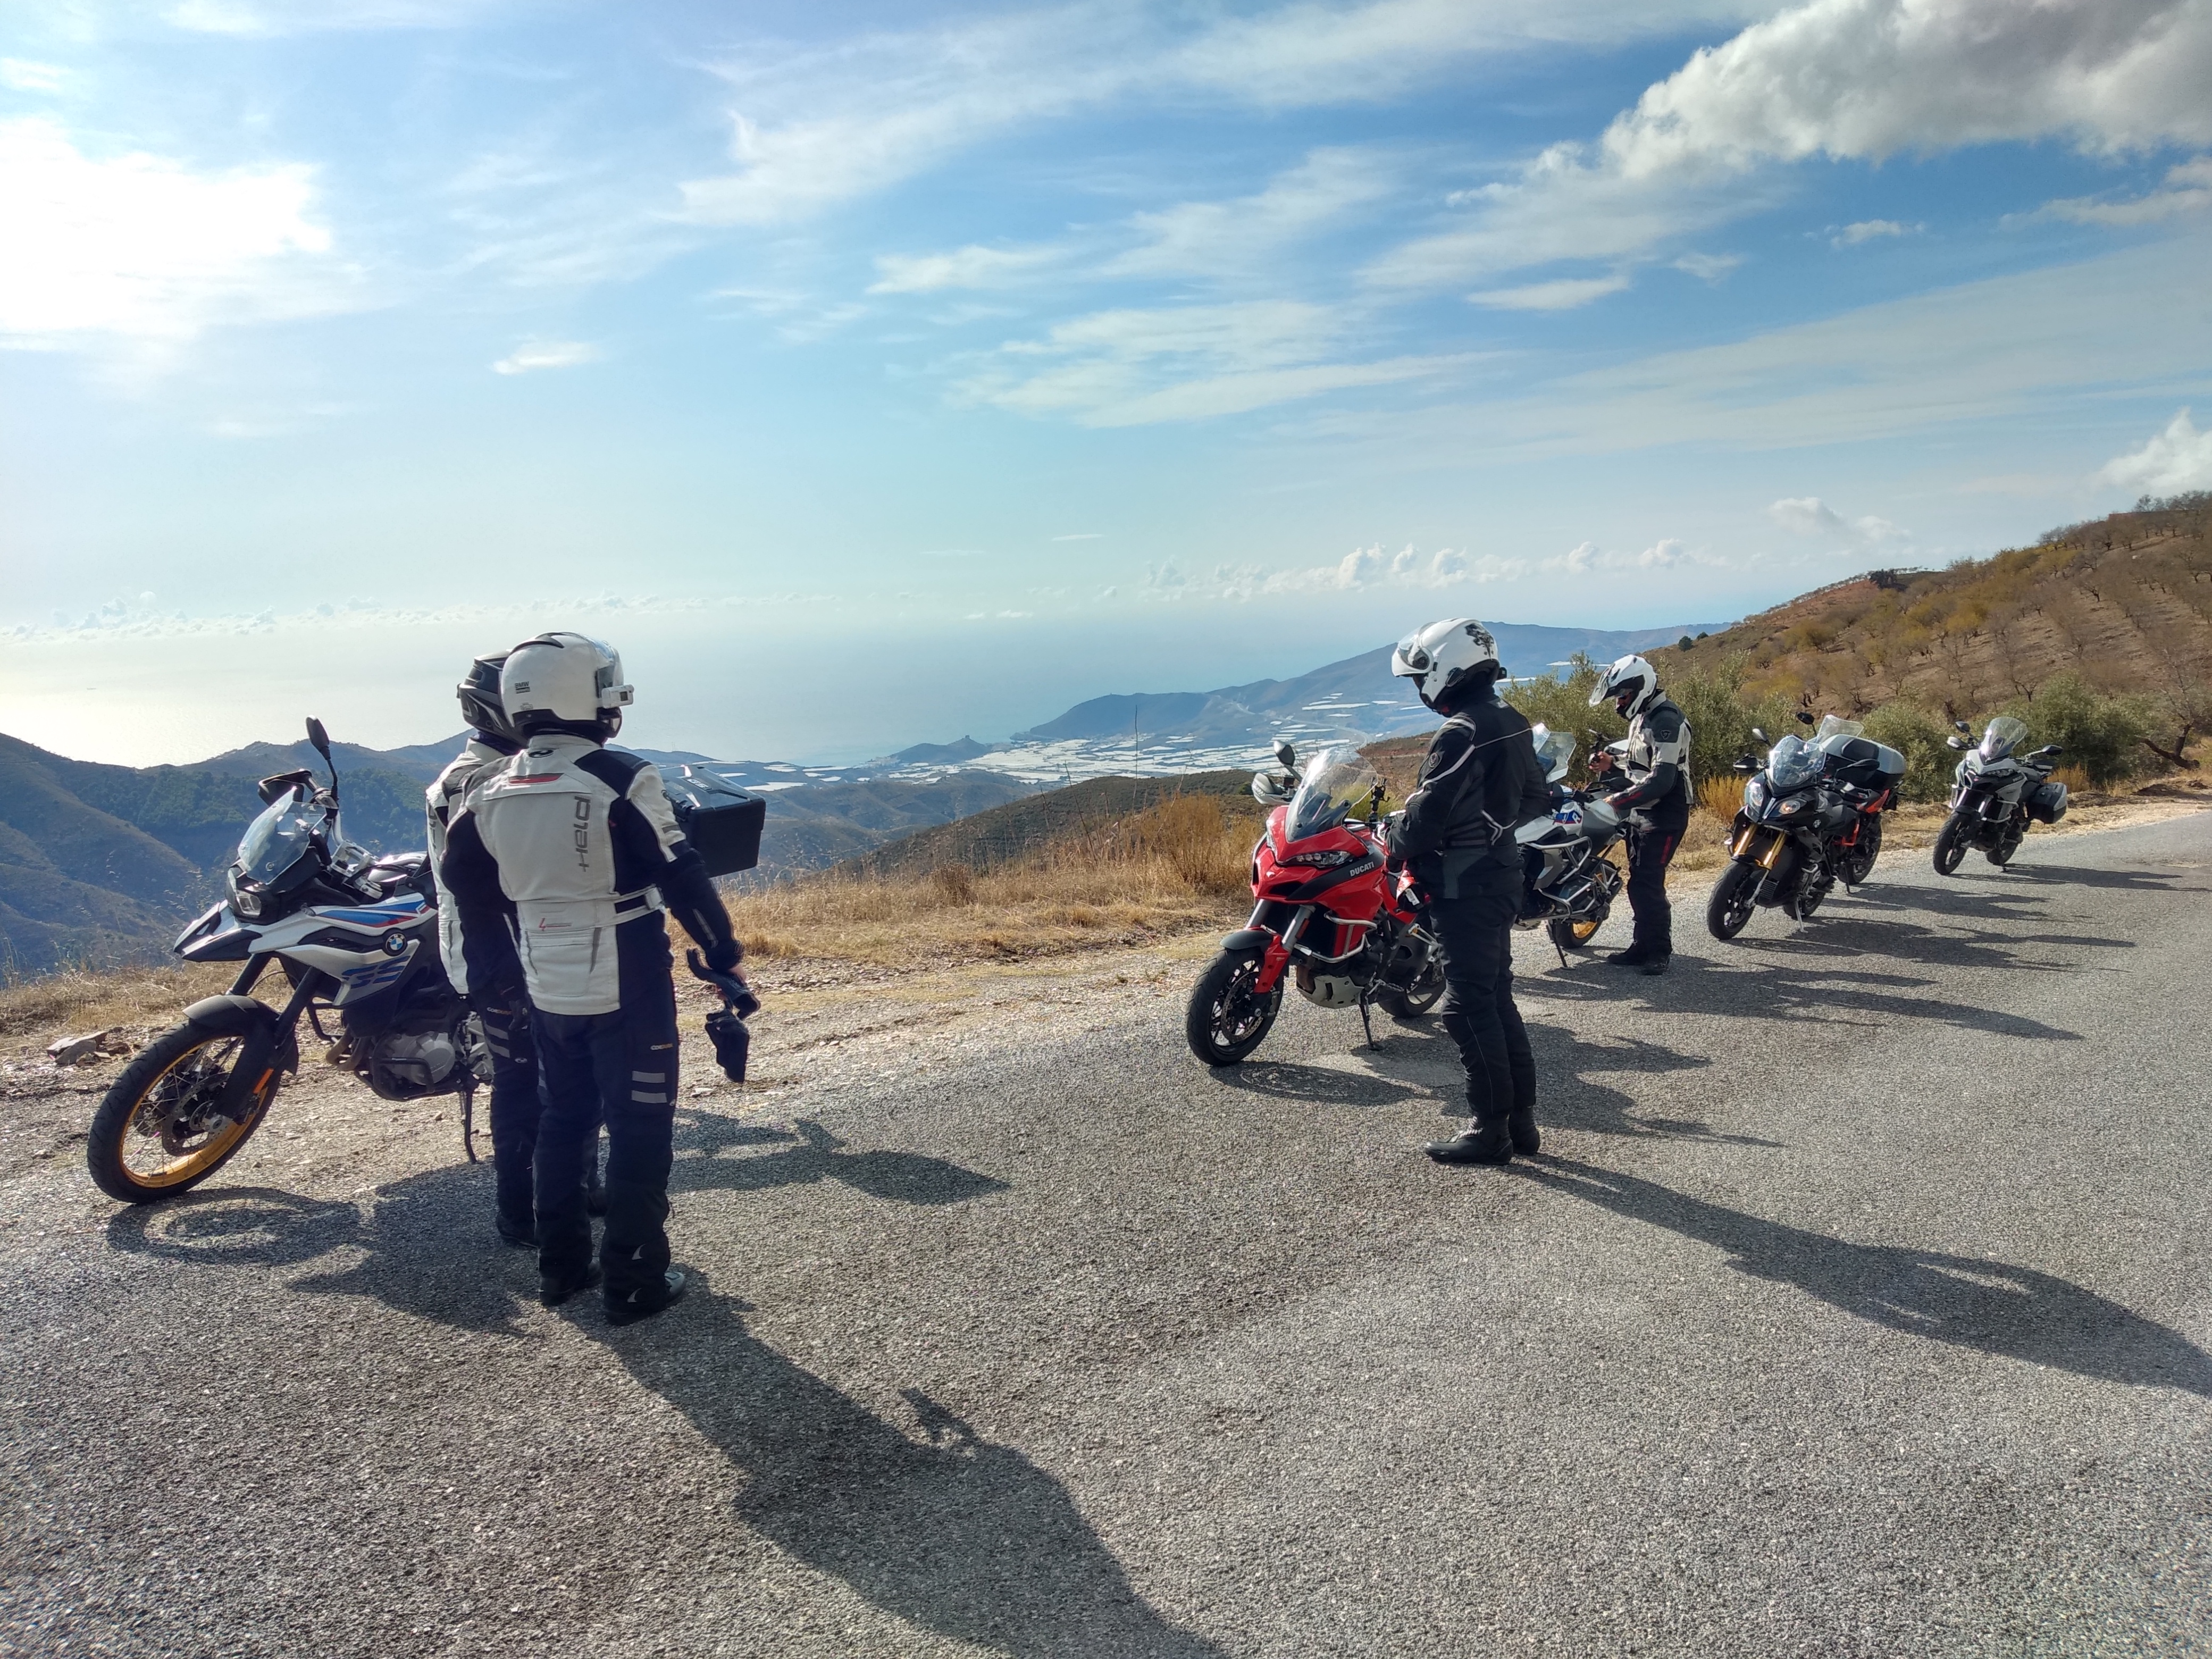 [VIDEO][Turism Moto] Cum a fost la Motorcycle Paradise Andalucia by Love for Ride [Ziua 1/3]